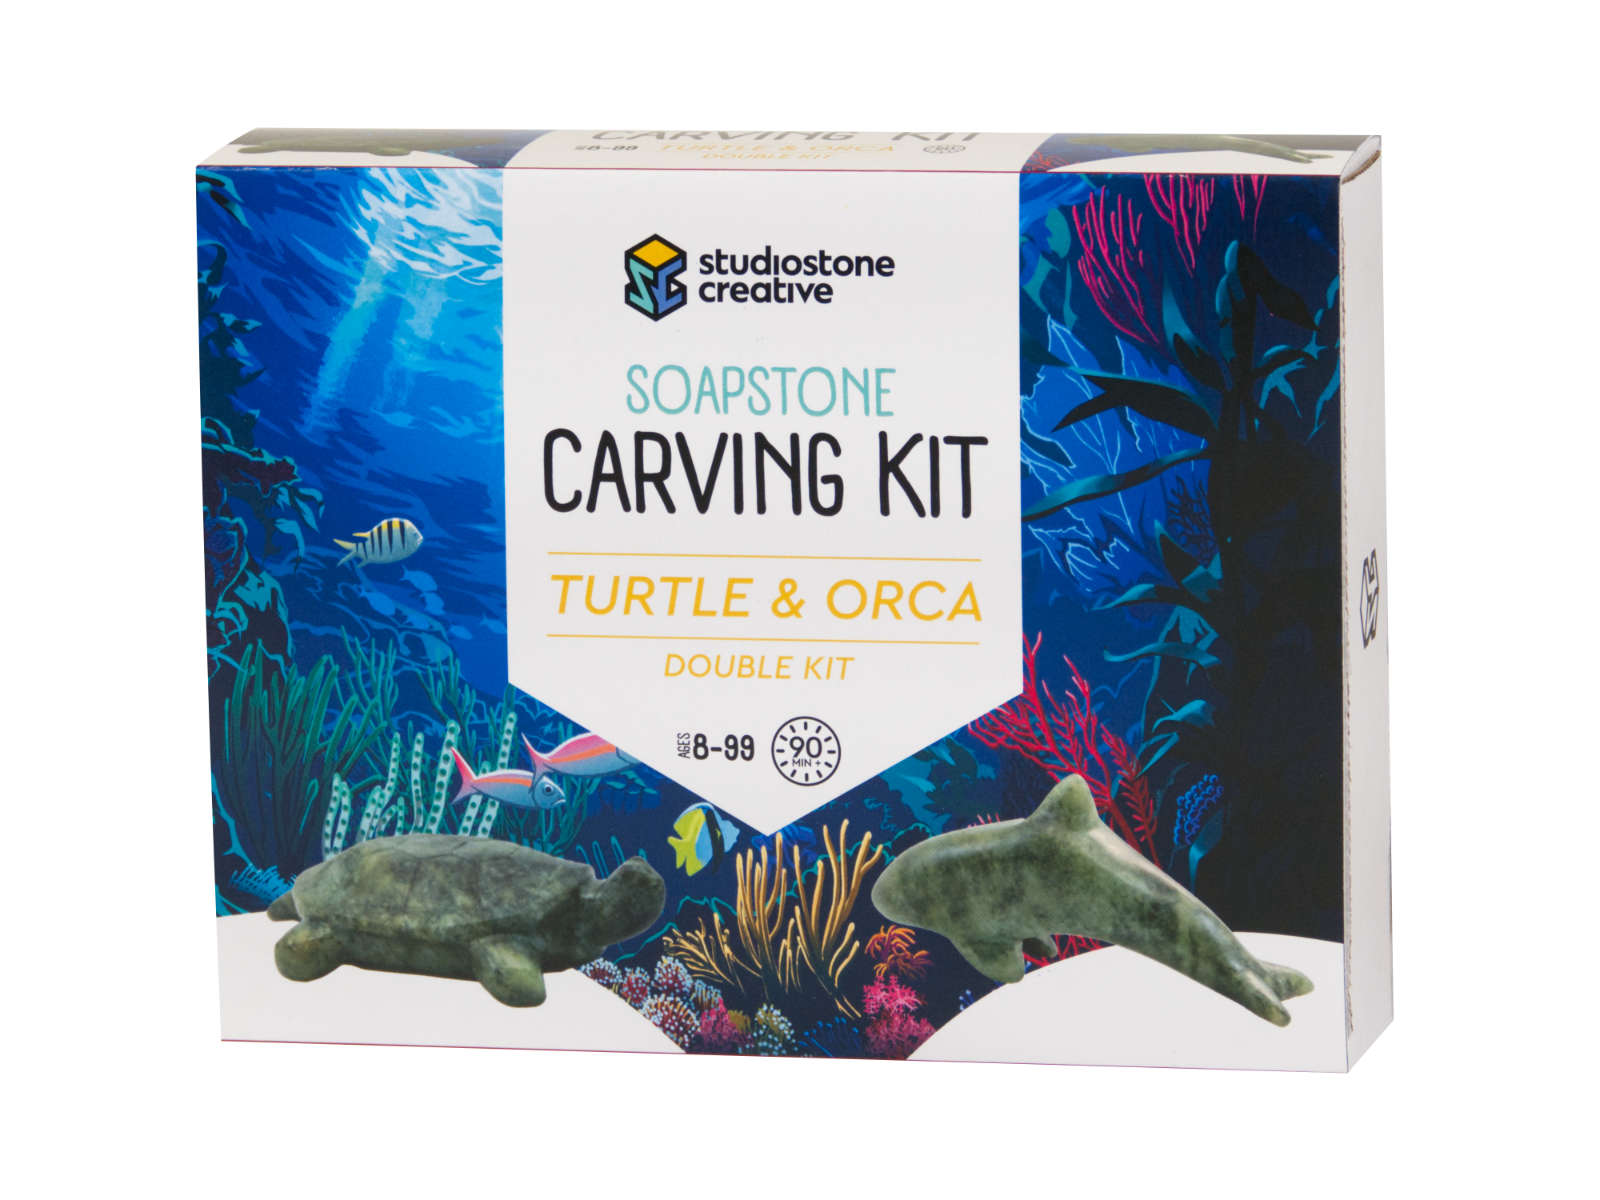 Double turtle and orca soapstone carving kit box